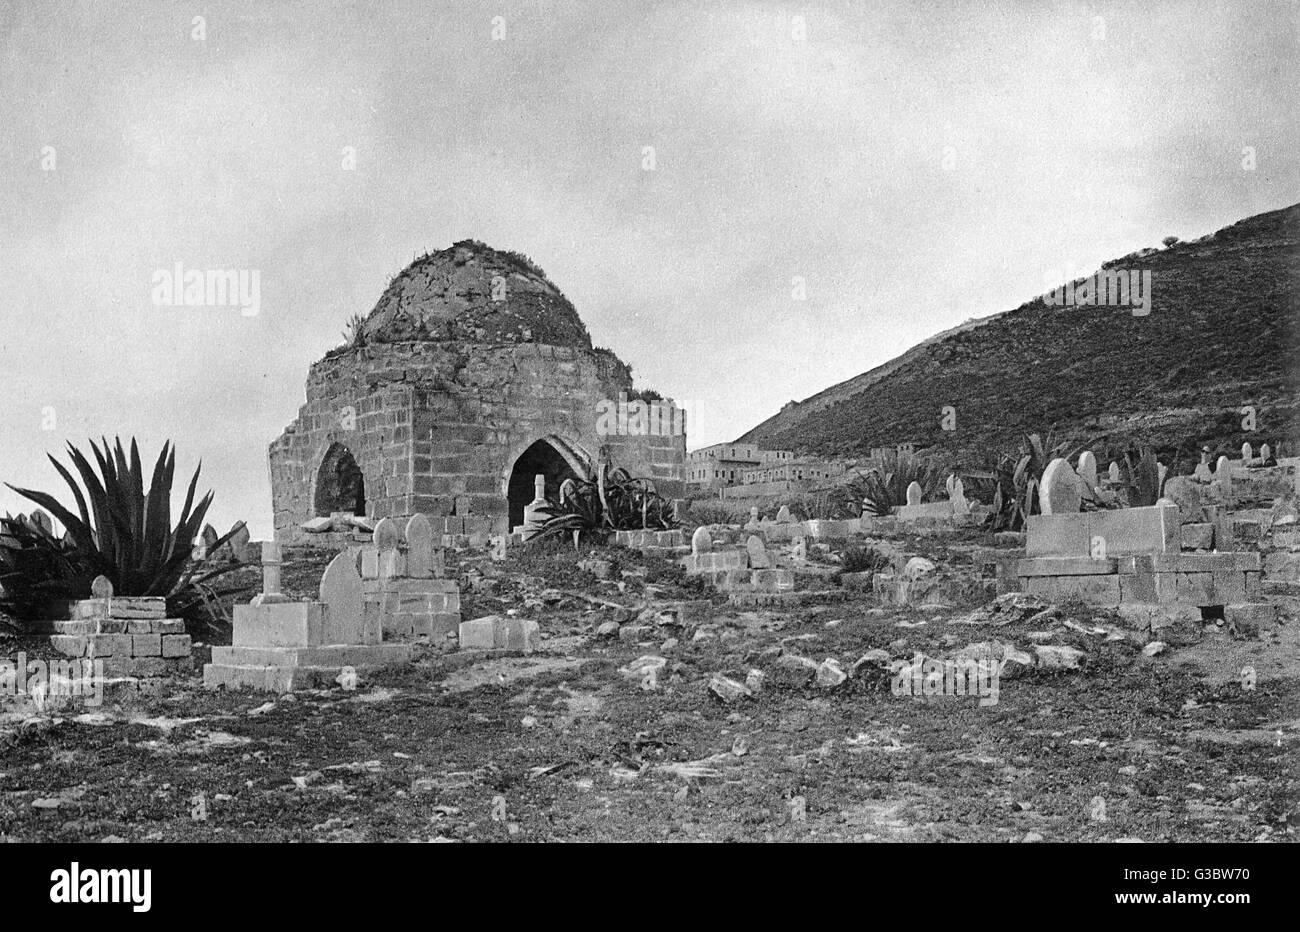 Moslem cemetery at Nablus, Palestine, West Bank.      Date: 1920s - Stock Image